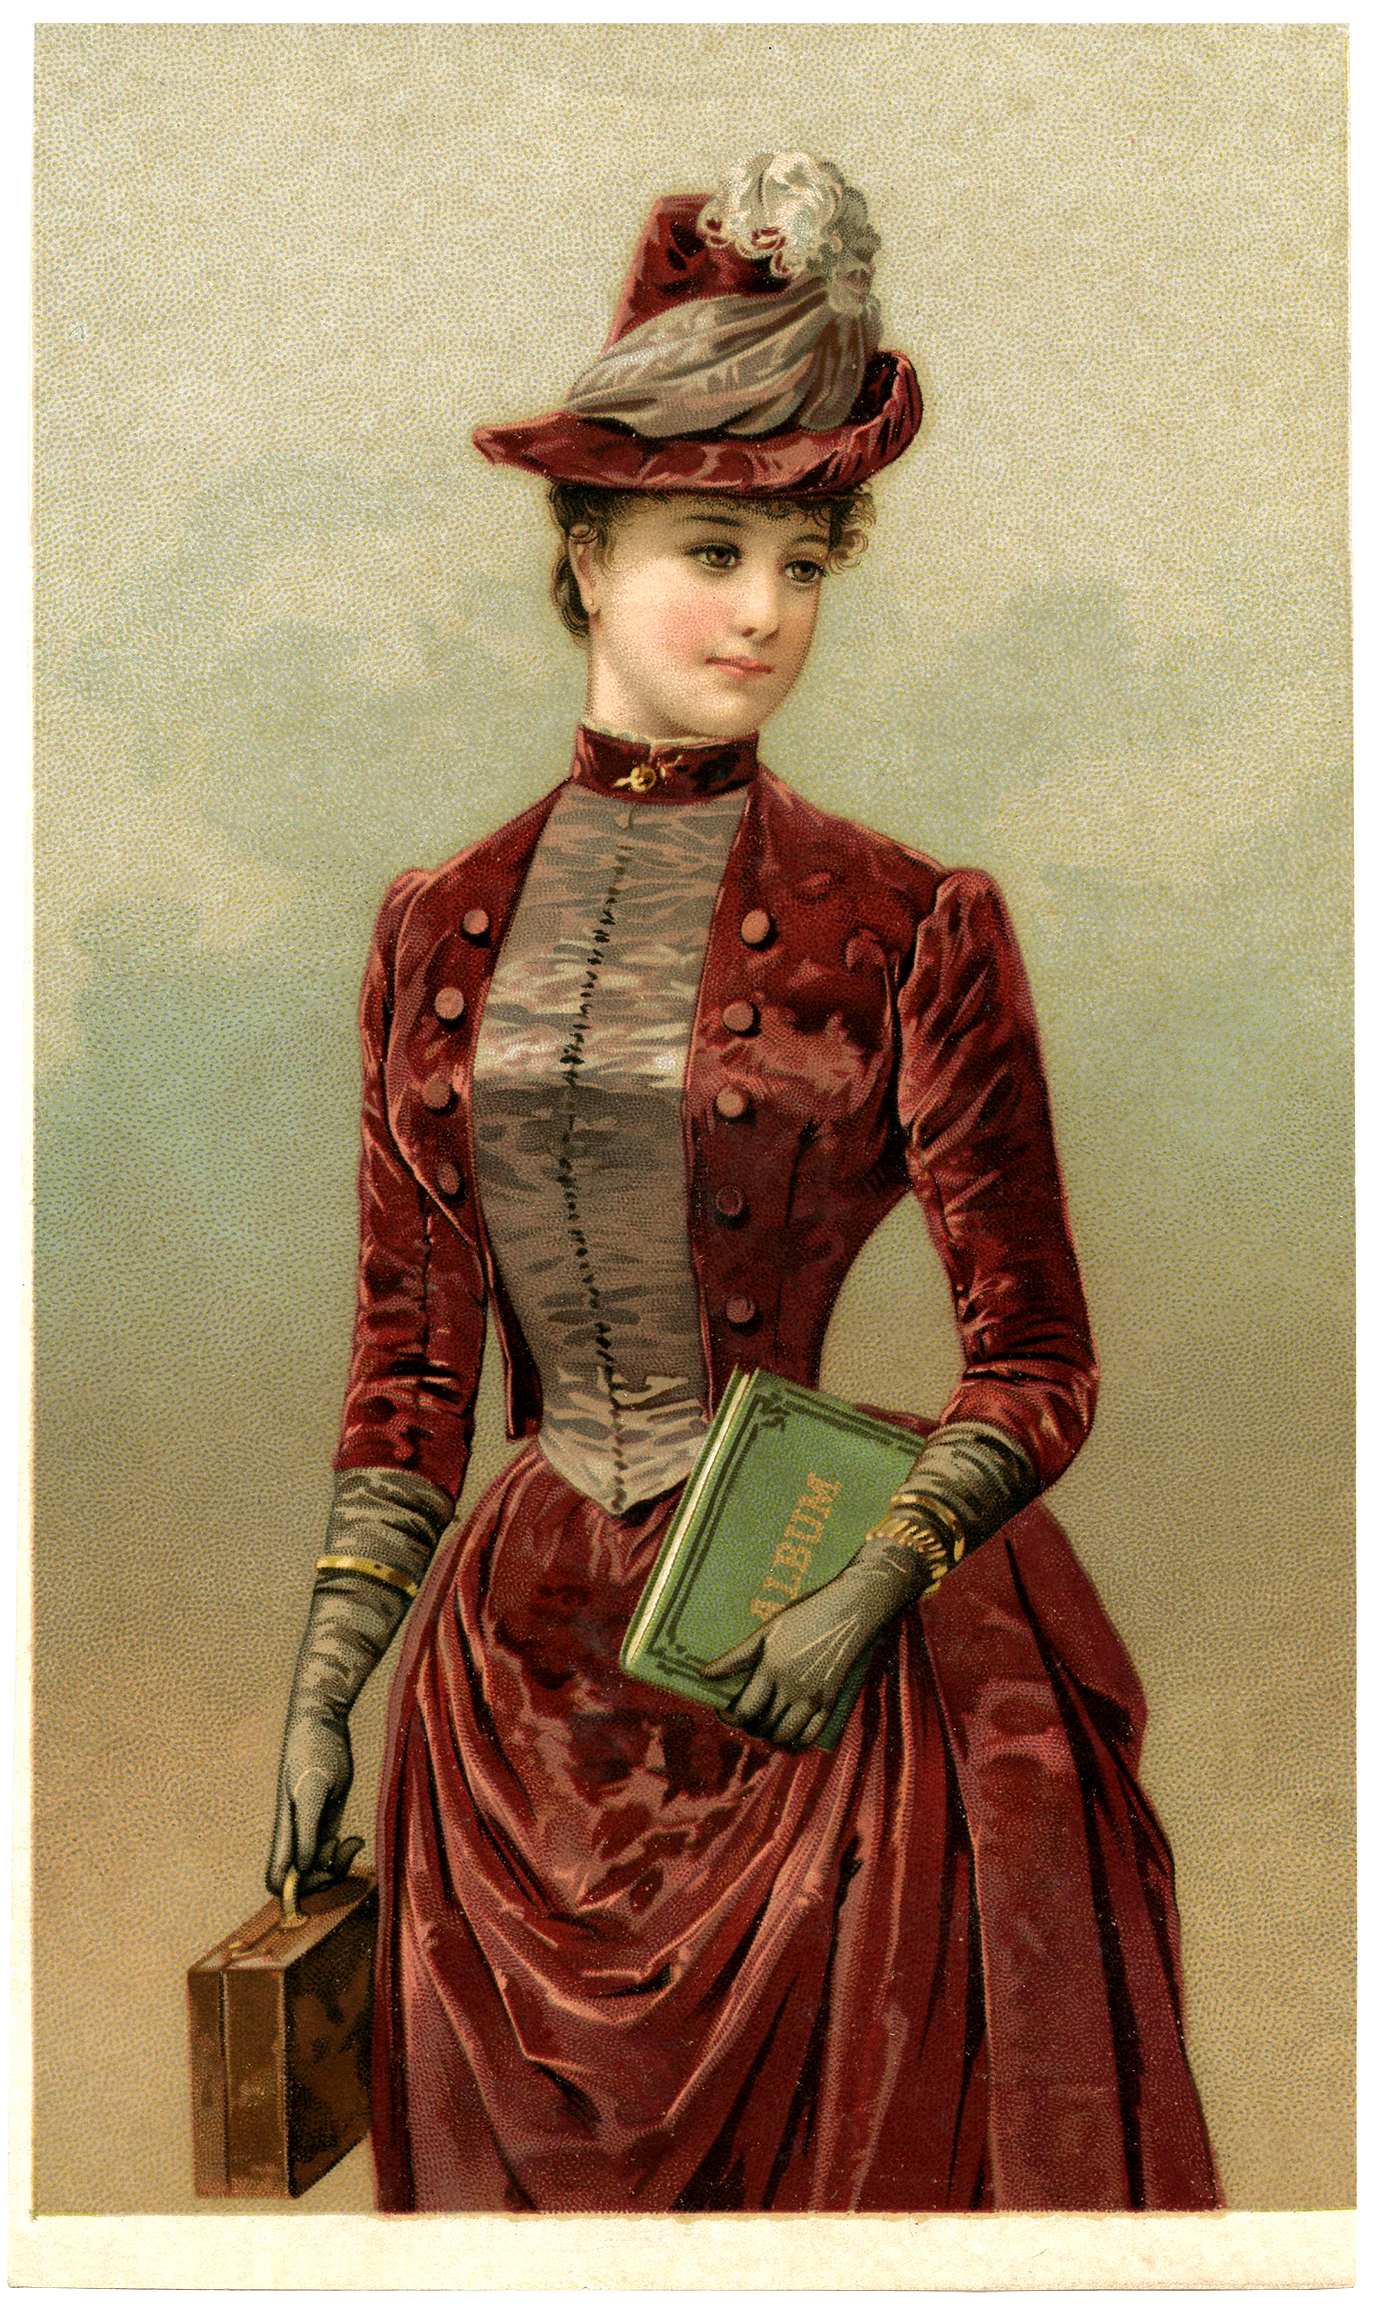 Women victorian glove clipart graphic free download Victorian Lady Image in Velvet Dress - The Graphics Fairy graphic free download